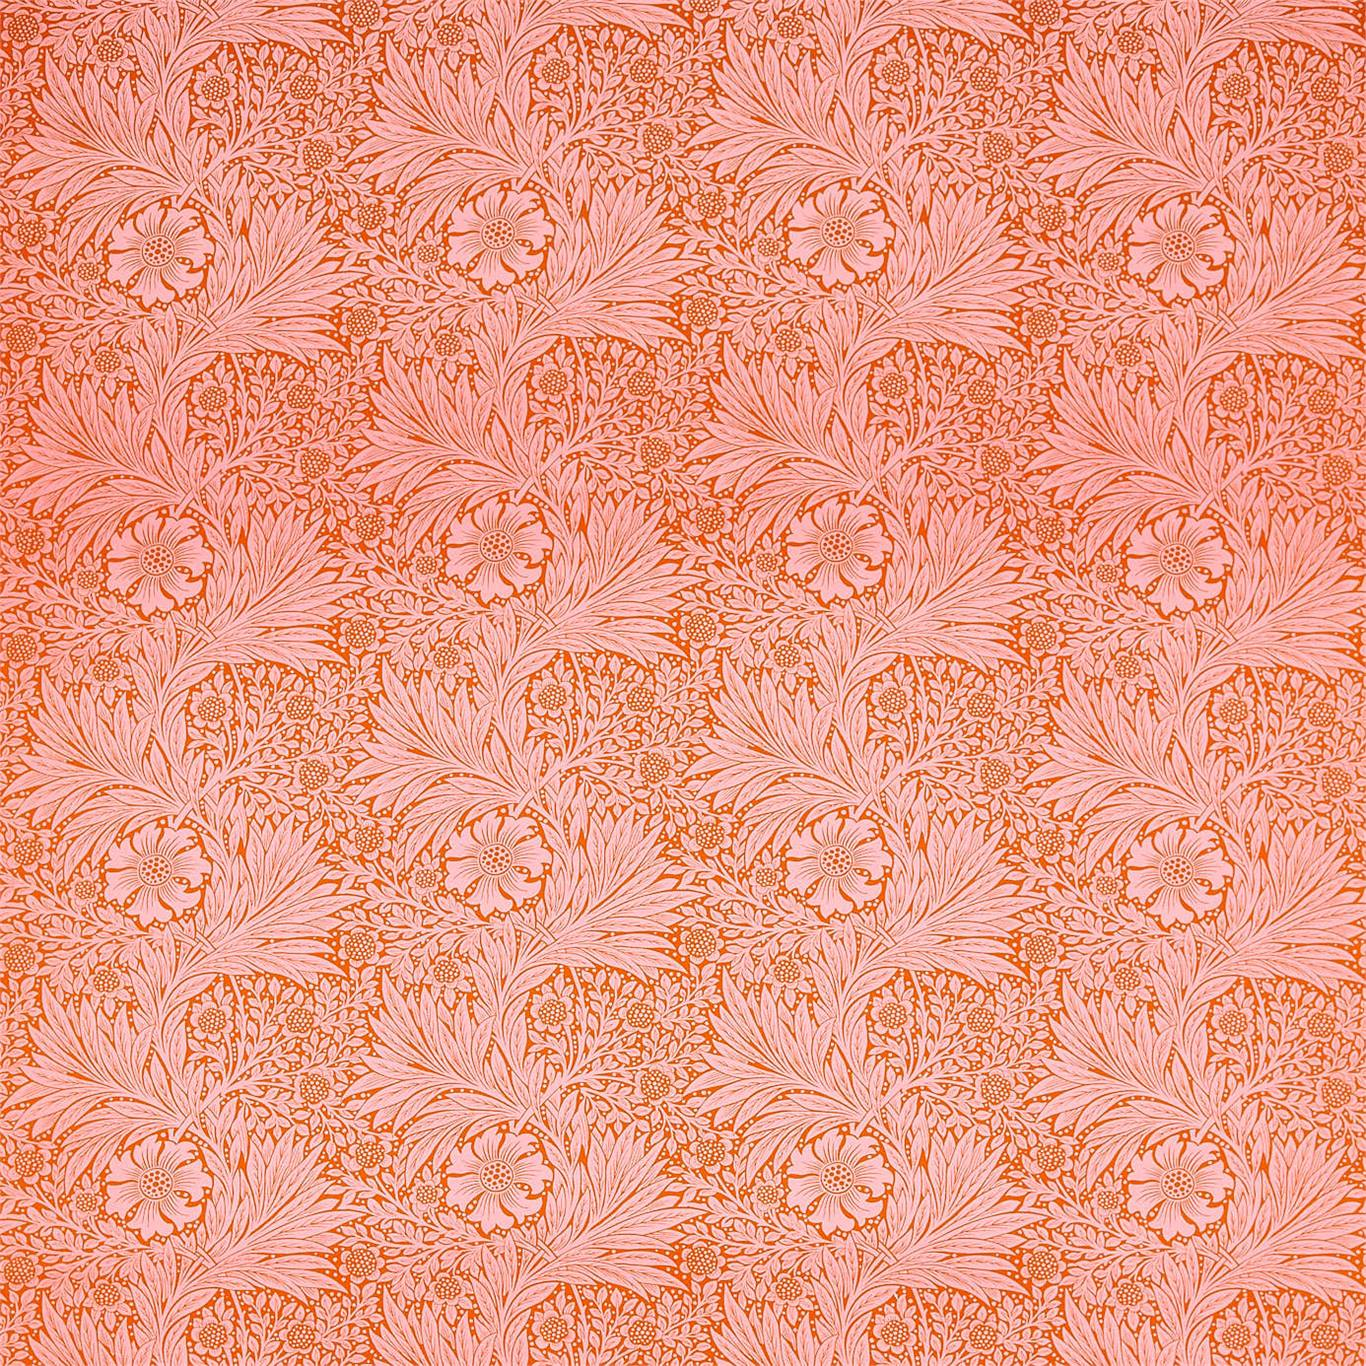 DBPF226844 Collection - Queens Square Fabric